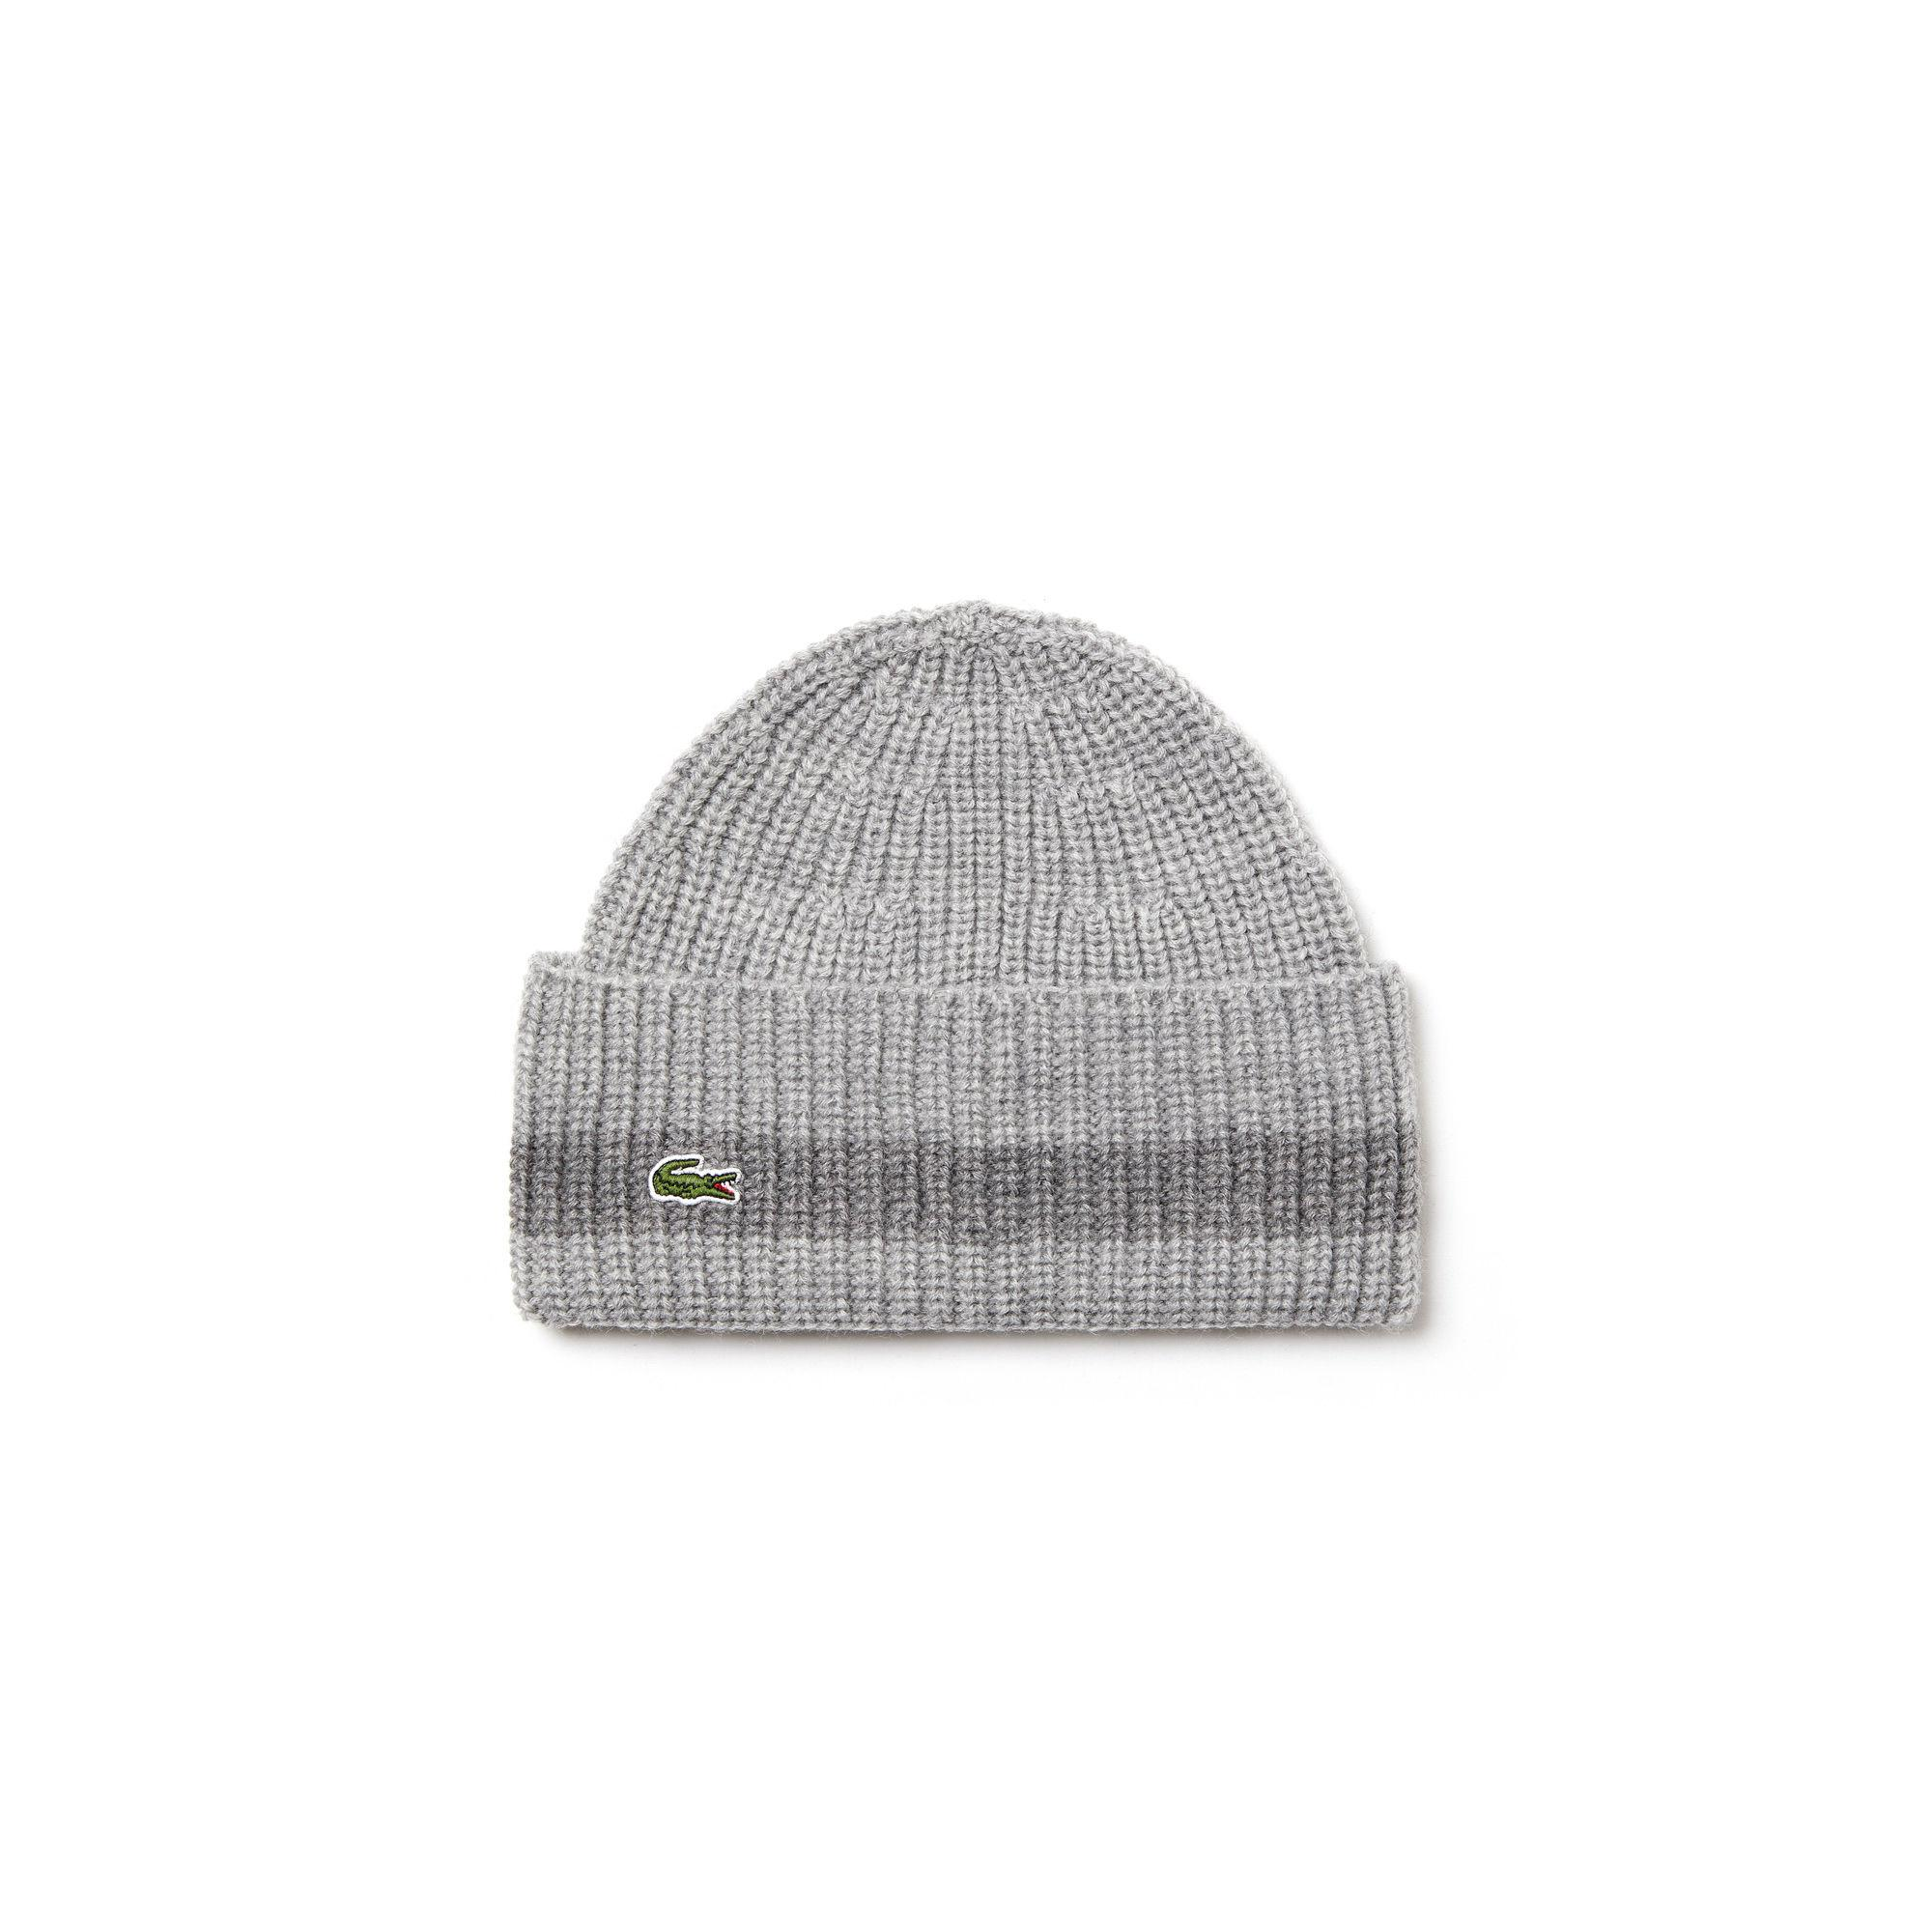 6d8f07f3c5681 Lyst - Lacoste Turned Edge Ribbed Wool Beanie in Gray for Men